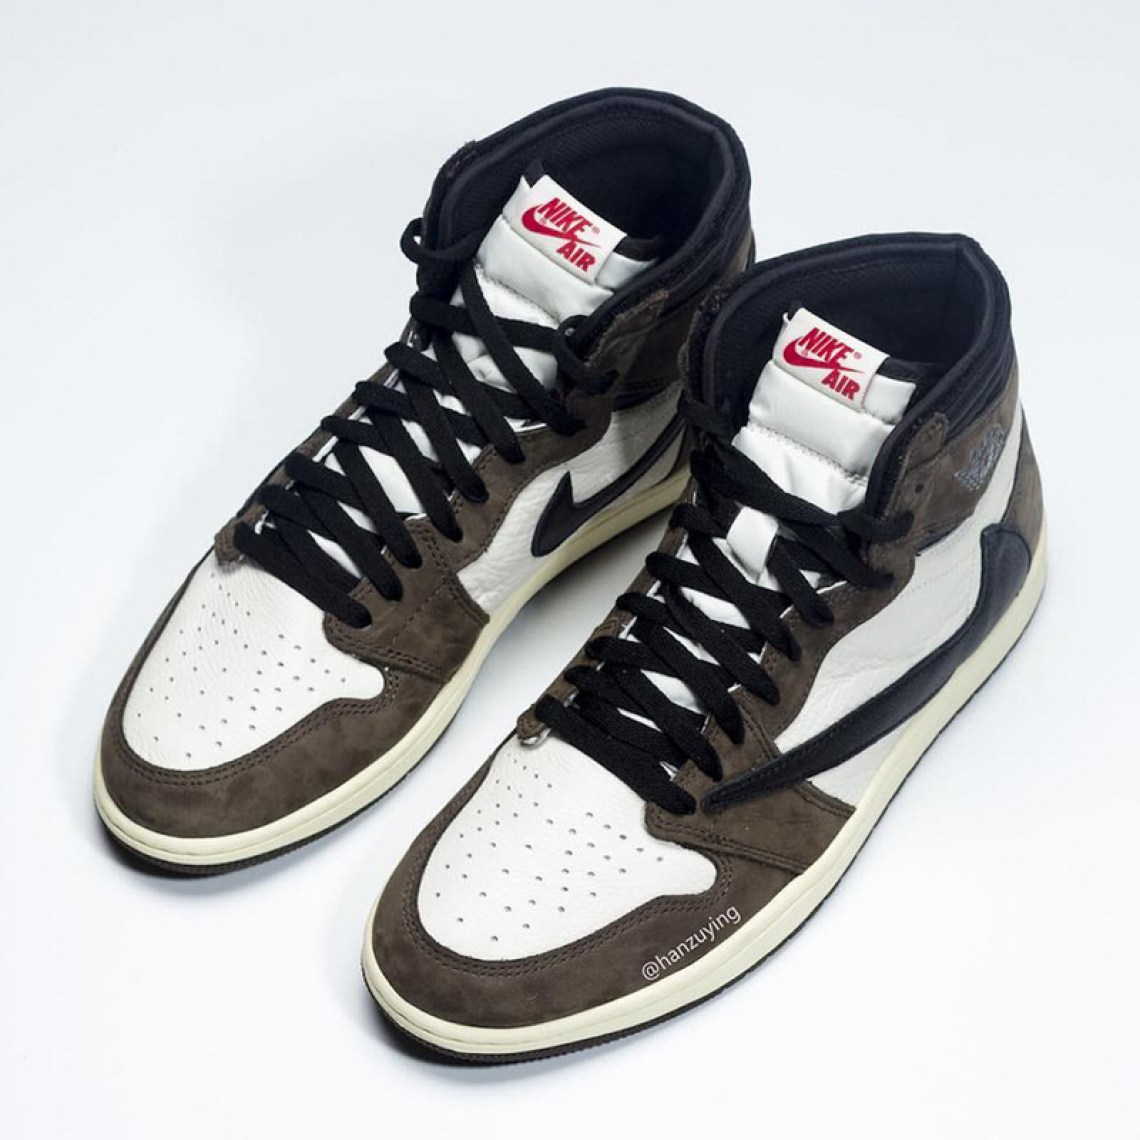 8e0f1f11ed3512 How to Cop the Travis Scott x Air Jordan 1